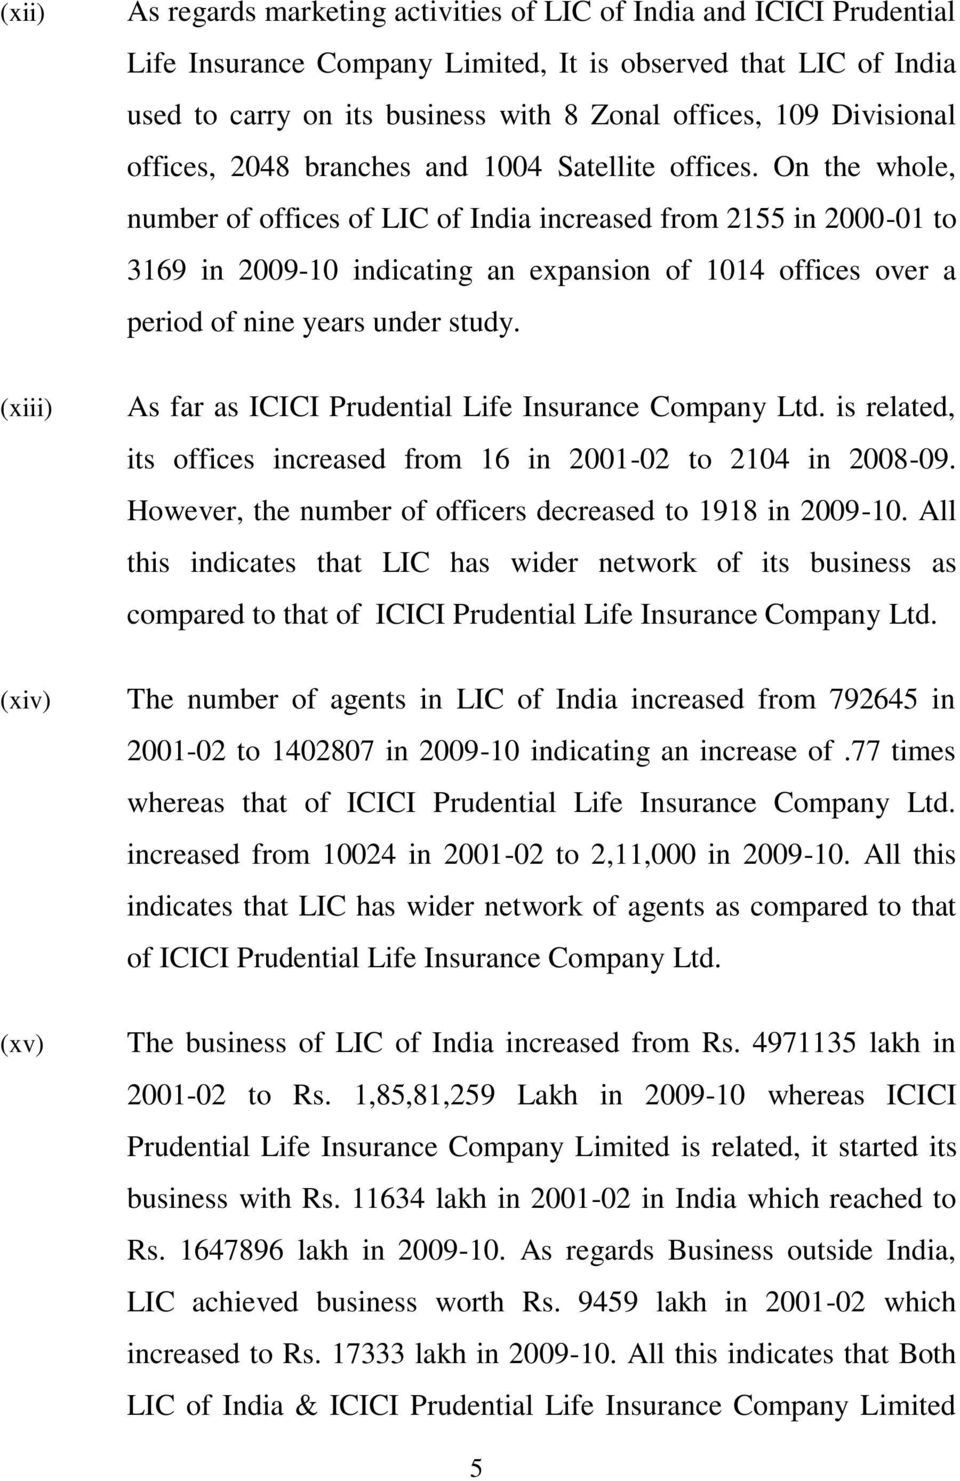 On the whole, number of offices of LIC of India increased from 2155 in 2000-01 to 3169 in 2009-10 indicating an expansion of 1014 offices over a period of nine years under study.